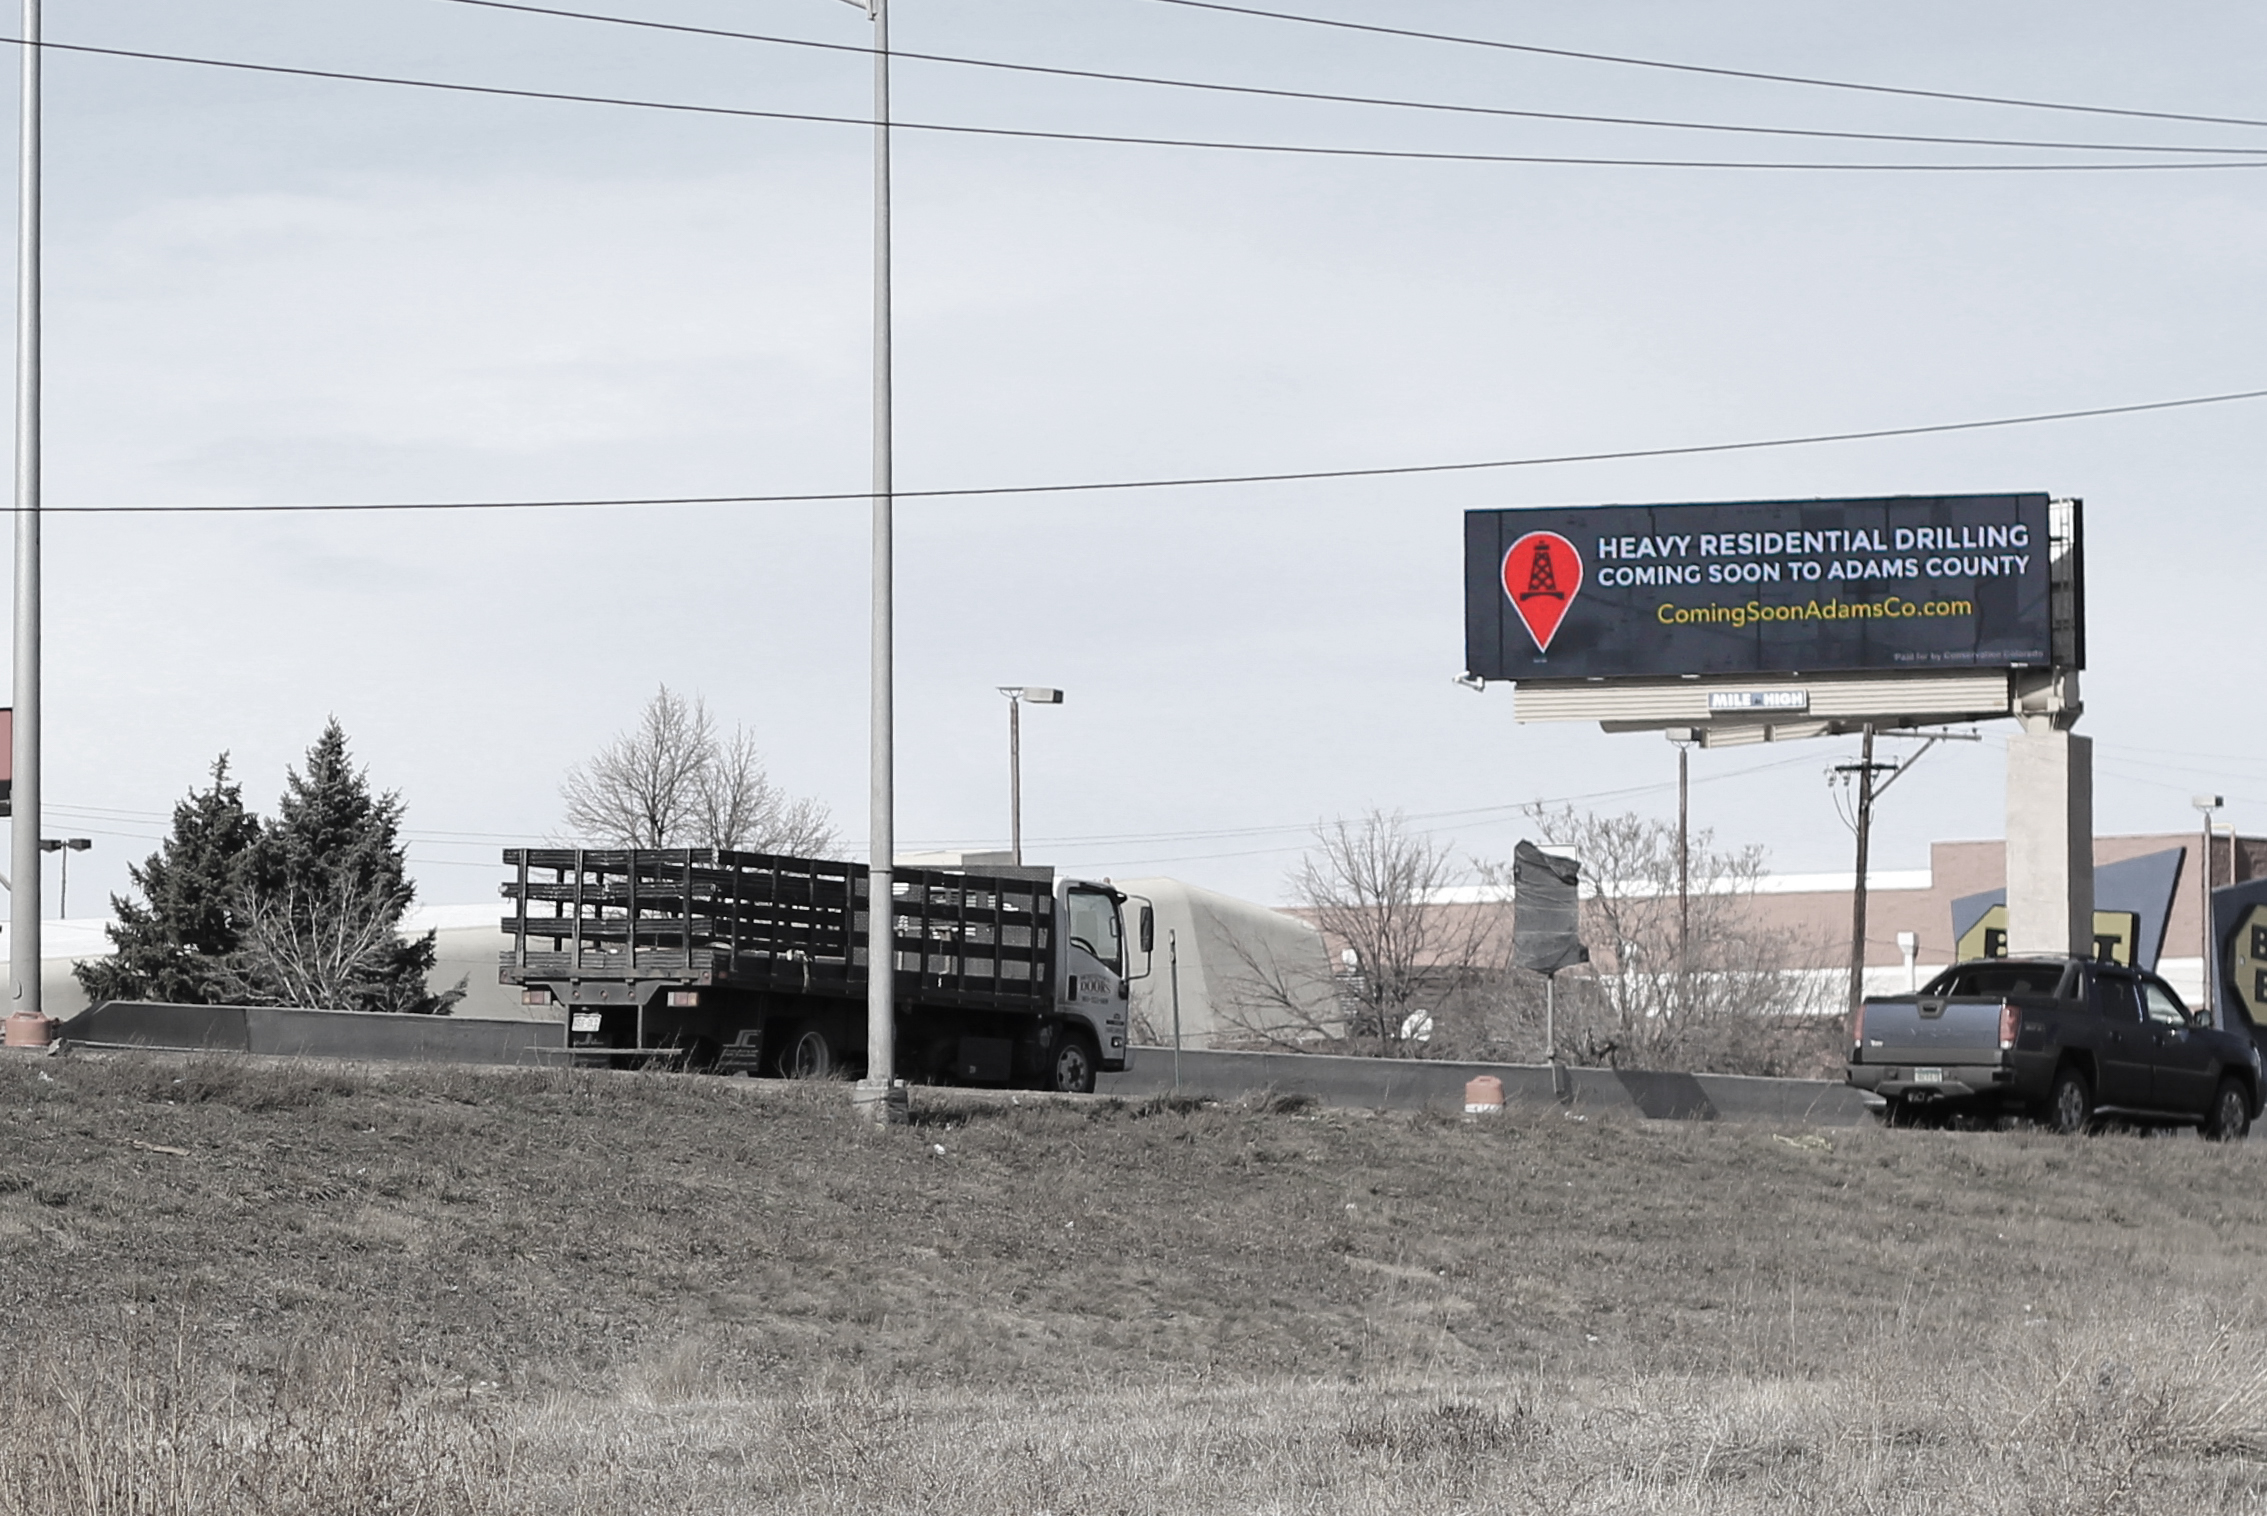 Coming Soon digital billboard along I25